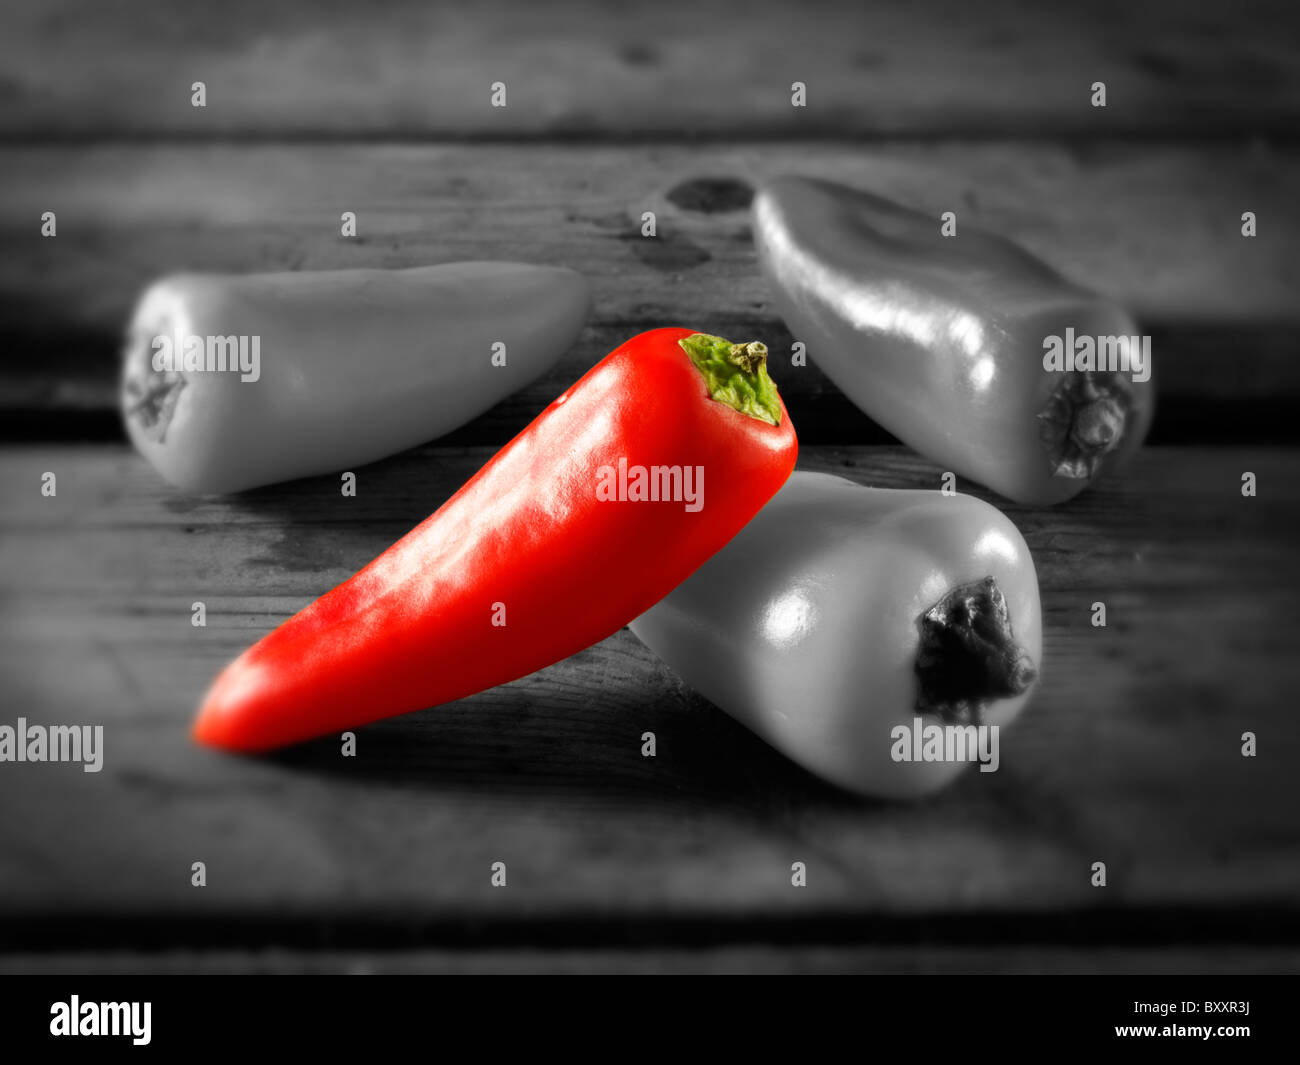 Single red sweet pepper amongst other mixed peppers - Stock Image